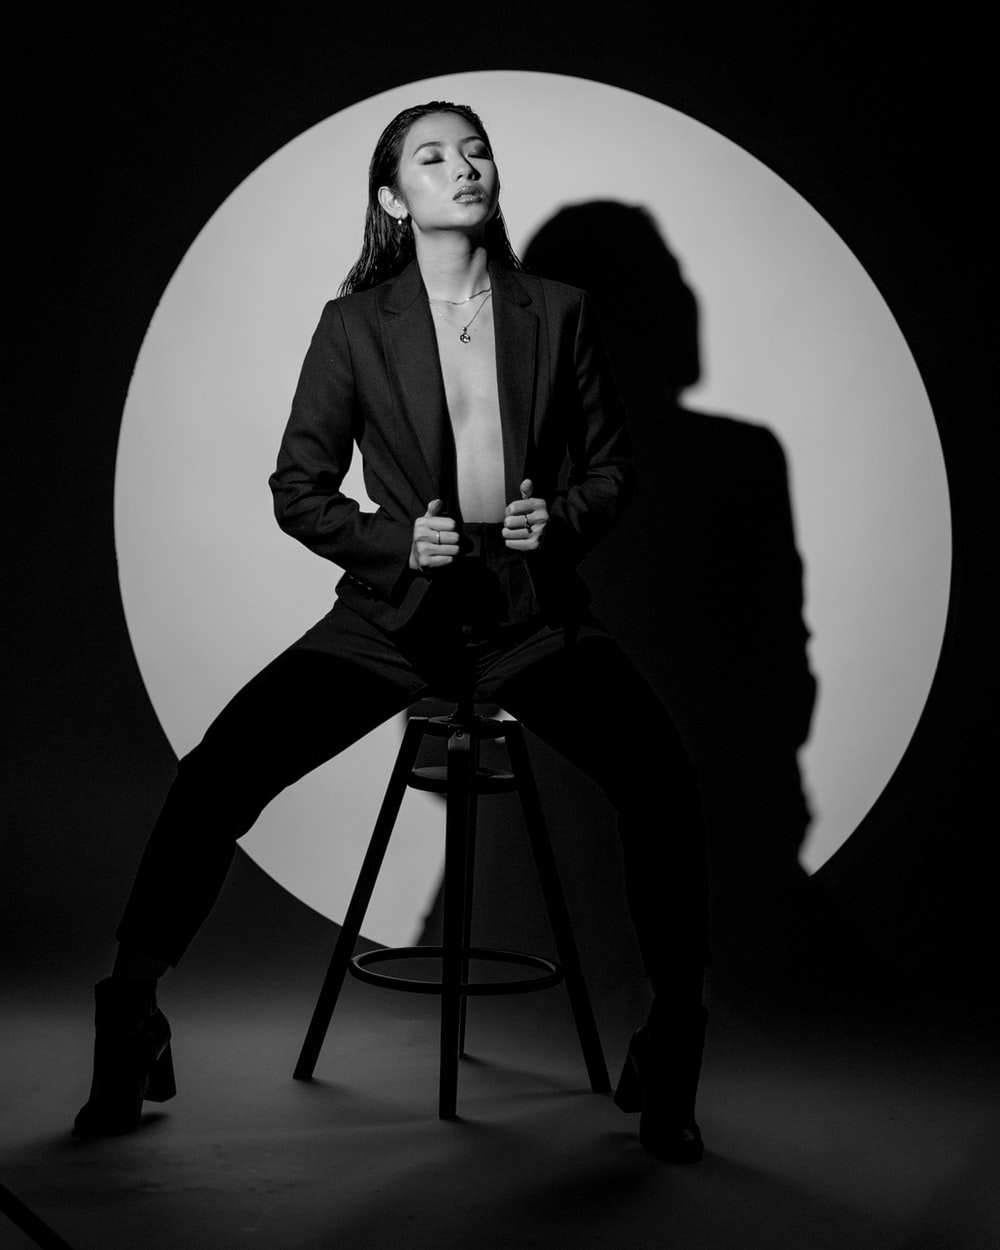 woman in black suit jacket sitting on seat